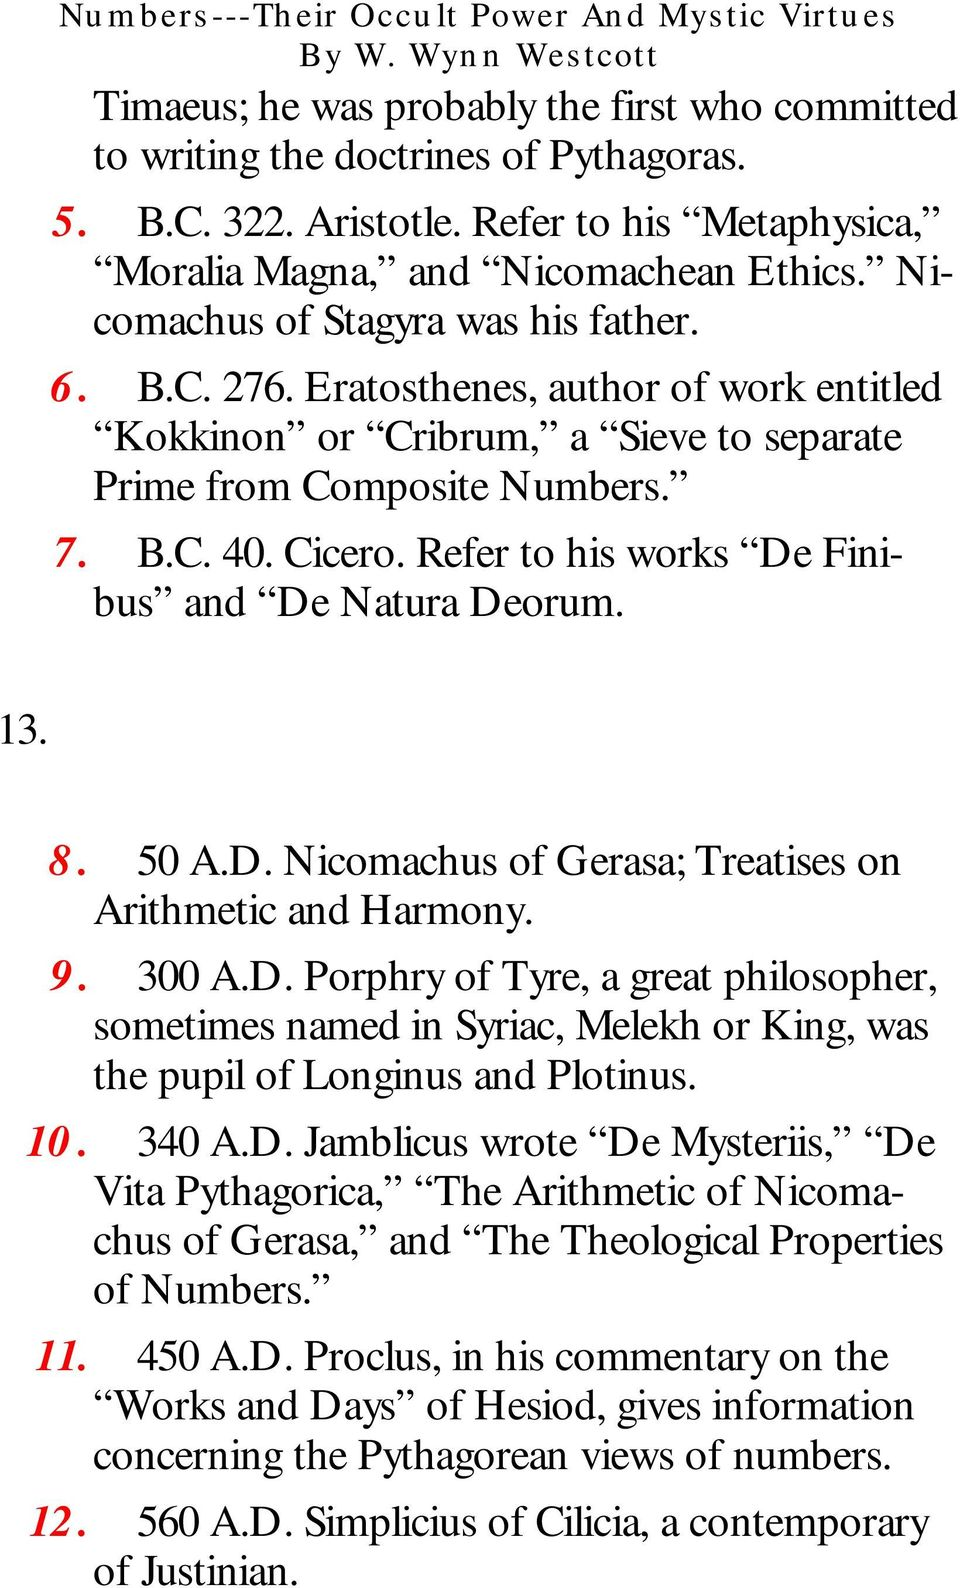 Refer to his works De Finibus and De Natura Deorum. 13. 8. 50 A.D. Nicomachus of Gerasa; Treatises on Arithmetic and Harmony. 9. 300 A.D. Porphry of Tyre, a great philosopher, sometimes named in Syriac, Melekh or King, was the pupil of Longinus and Plotinus.